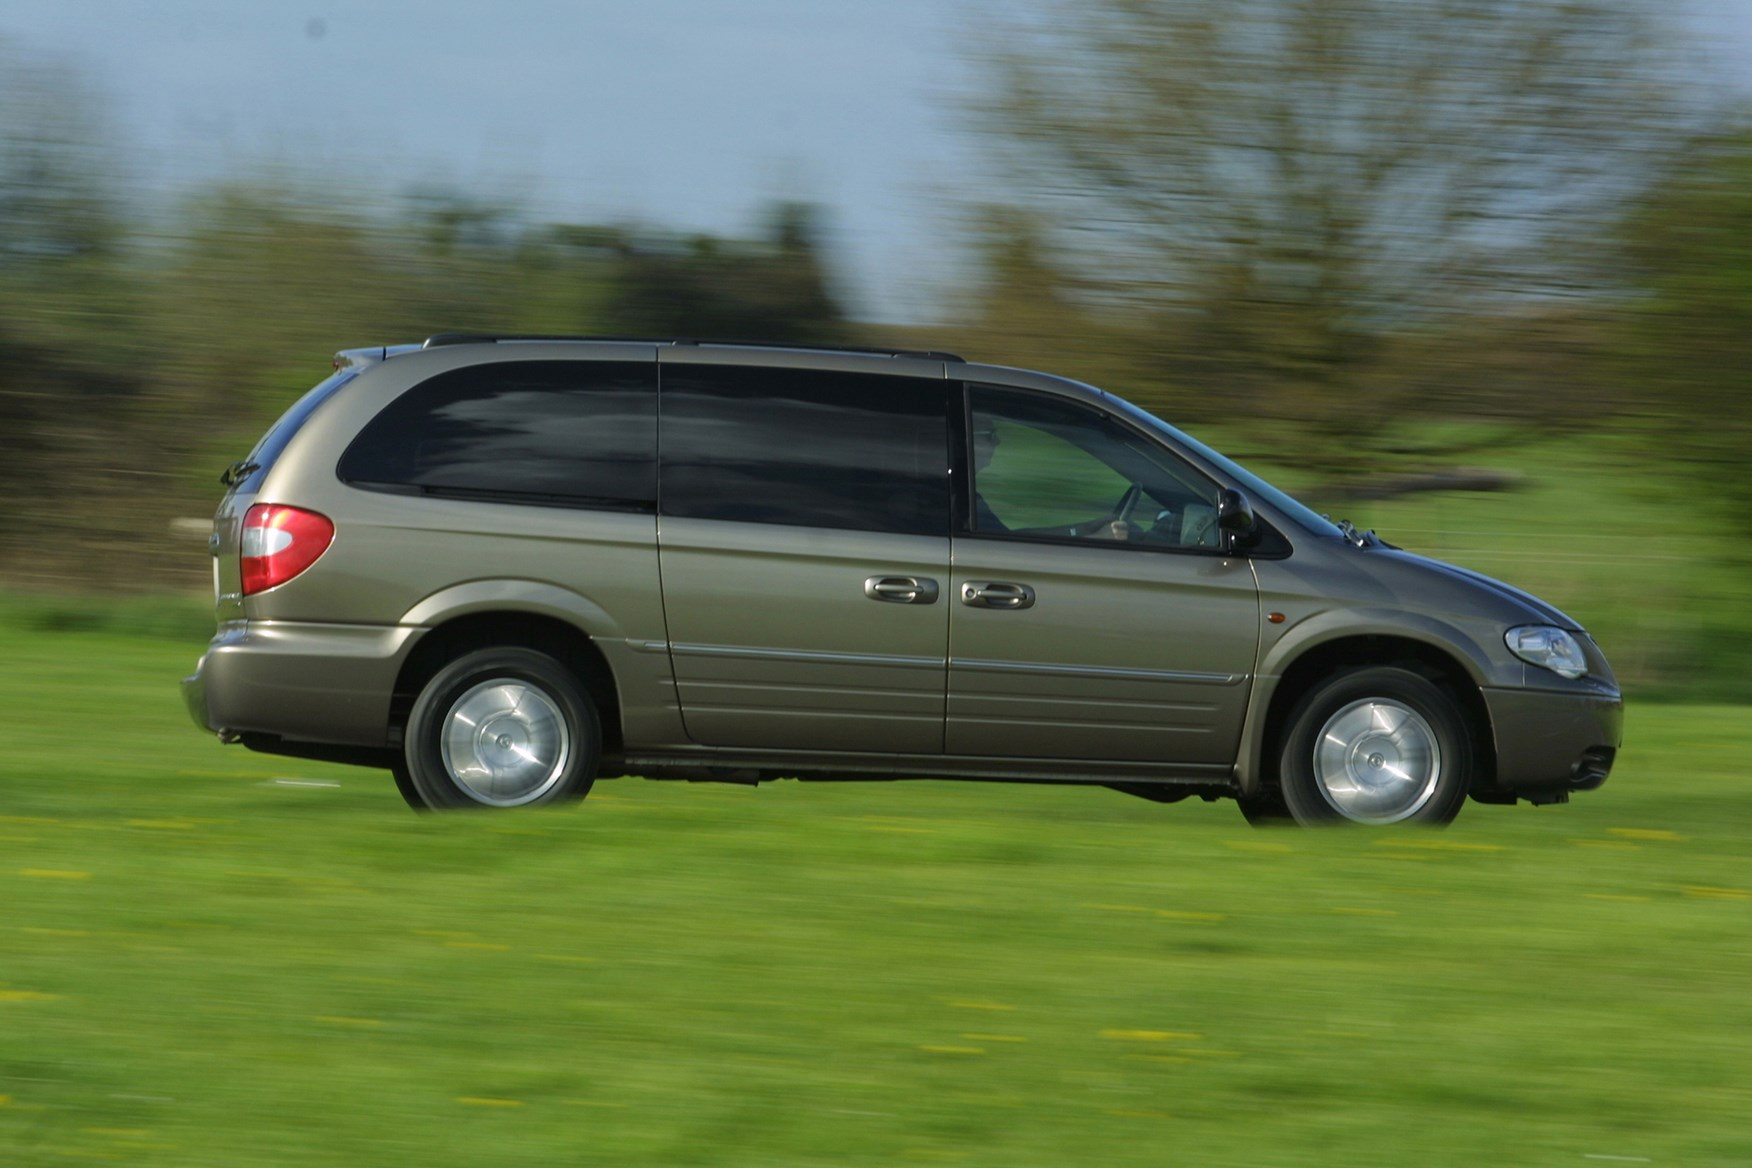 chrysler grand voyager estate 2001 2008 driving performance parkers. Black Bedroom Furniture Sets. Home Design Ideas